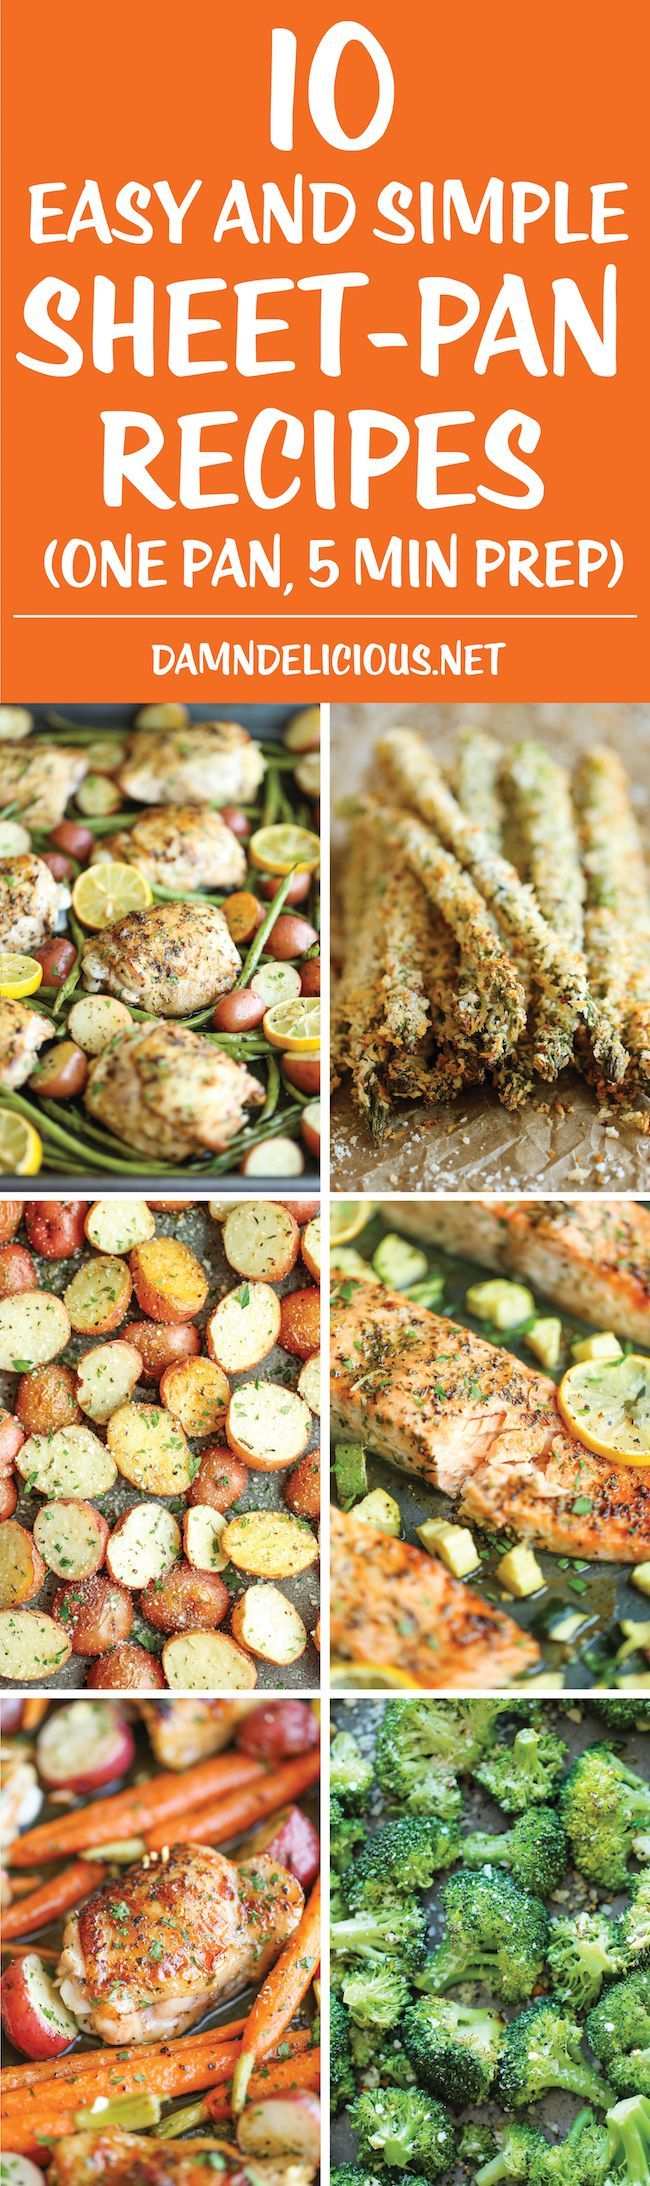 10 Easy and Simple Sheet-Pan Recipes #simplehealthydinner